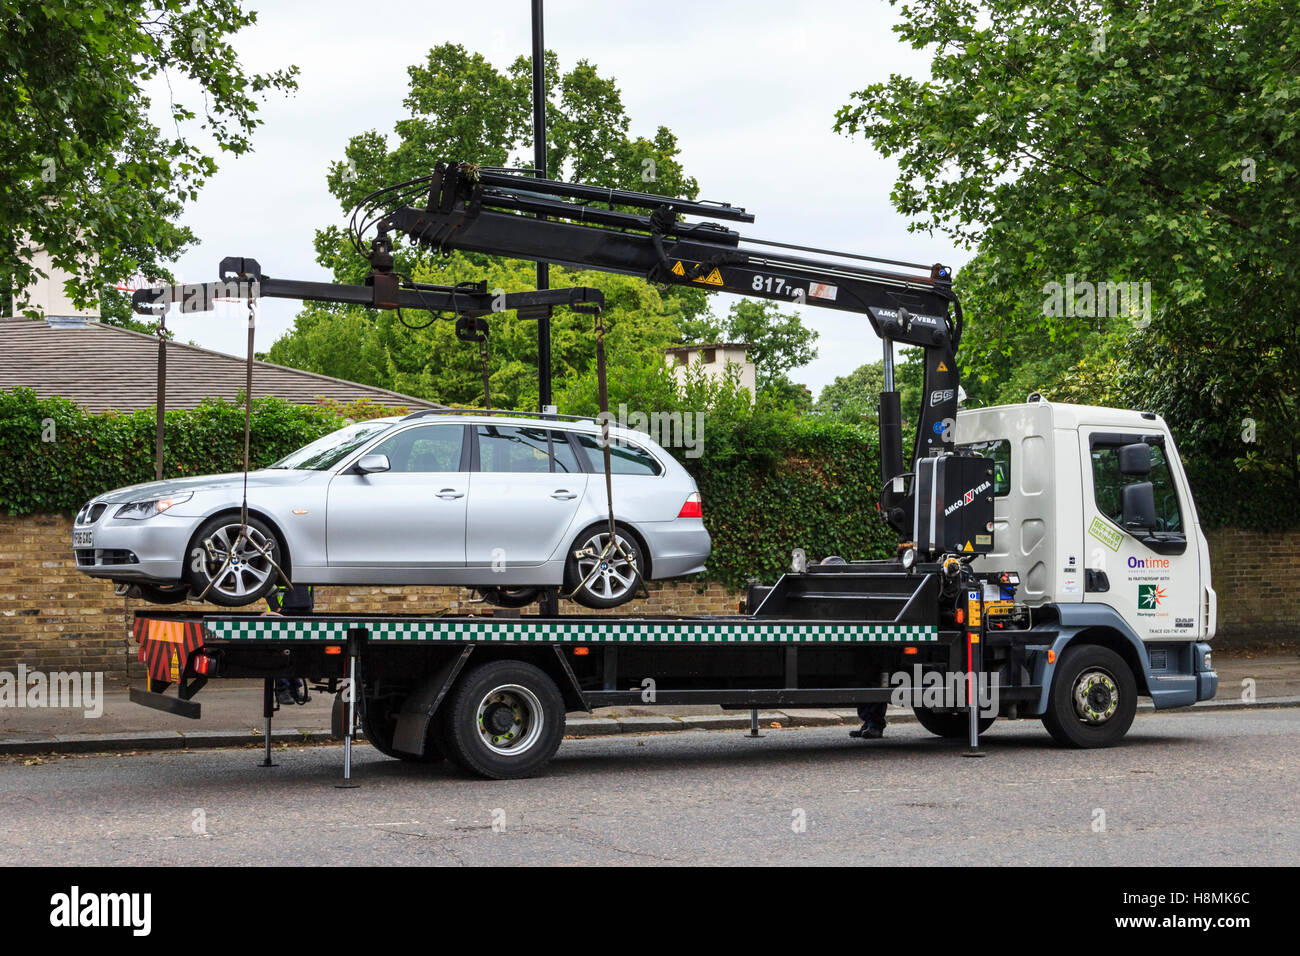 An illegally parked car being hoisted onto a lorry for removal, Hampstead Lane, London, UK Stock Photo